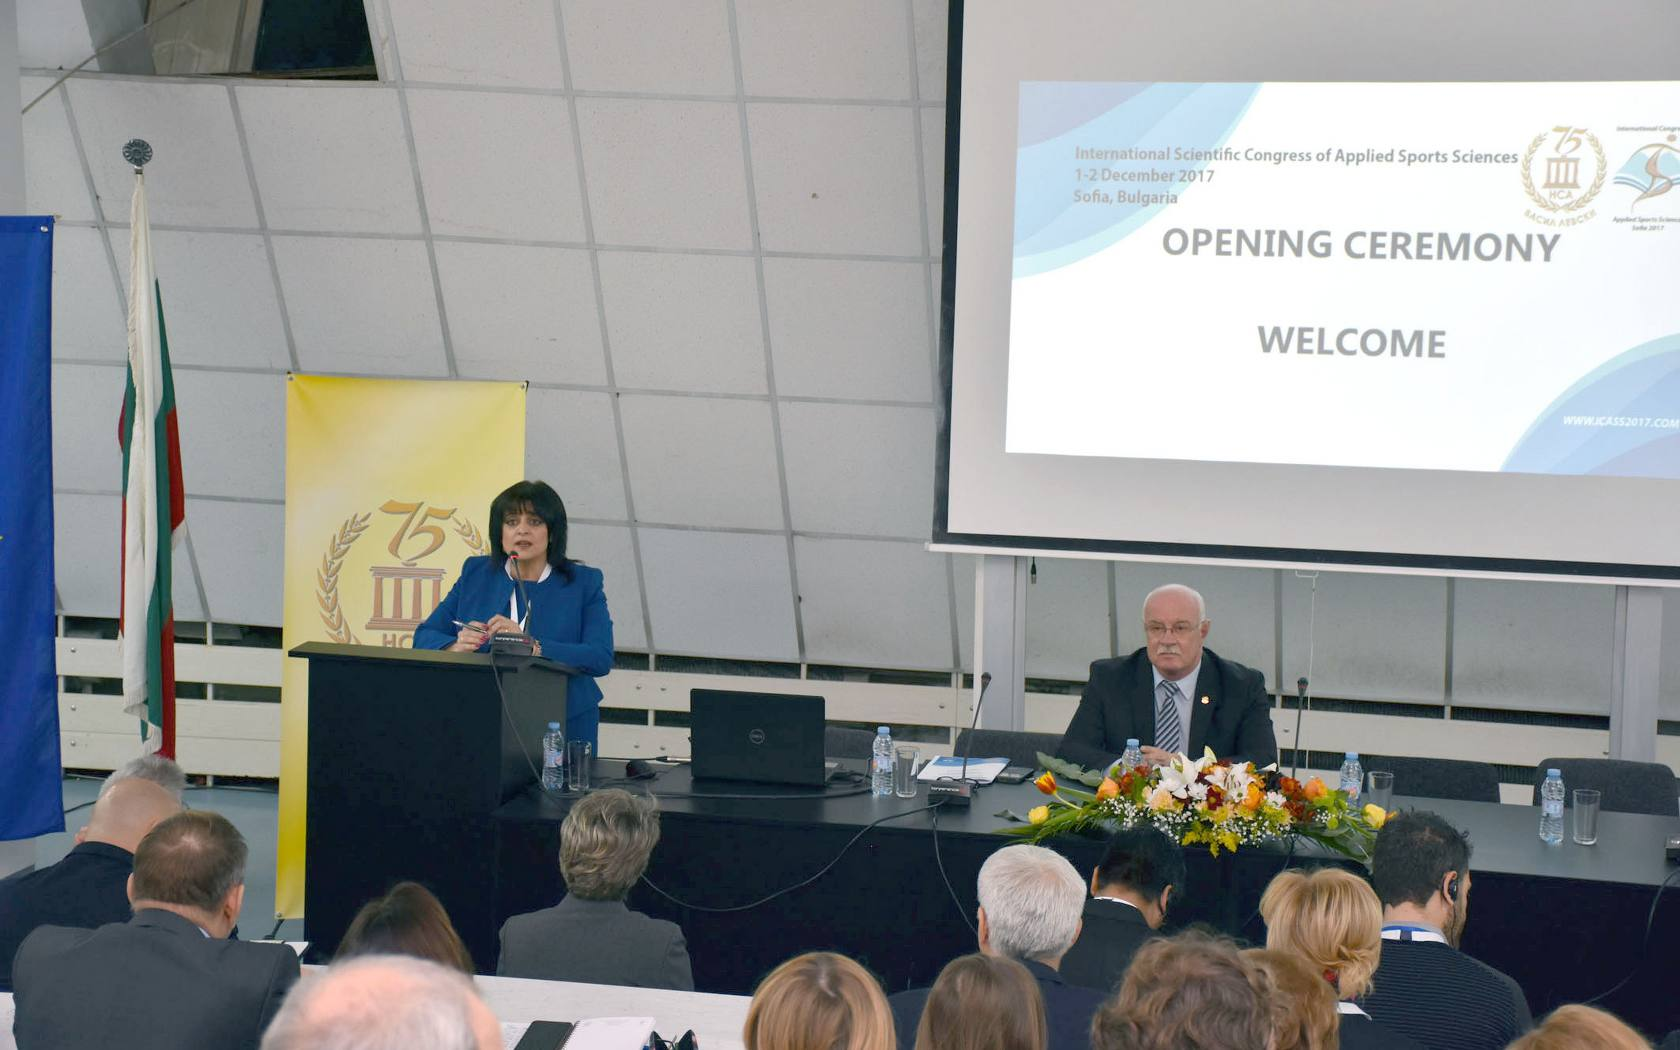 Opening Ceremony at the 2017 ICASS Congress in Sofia